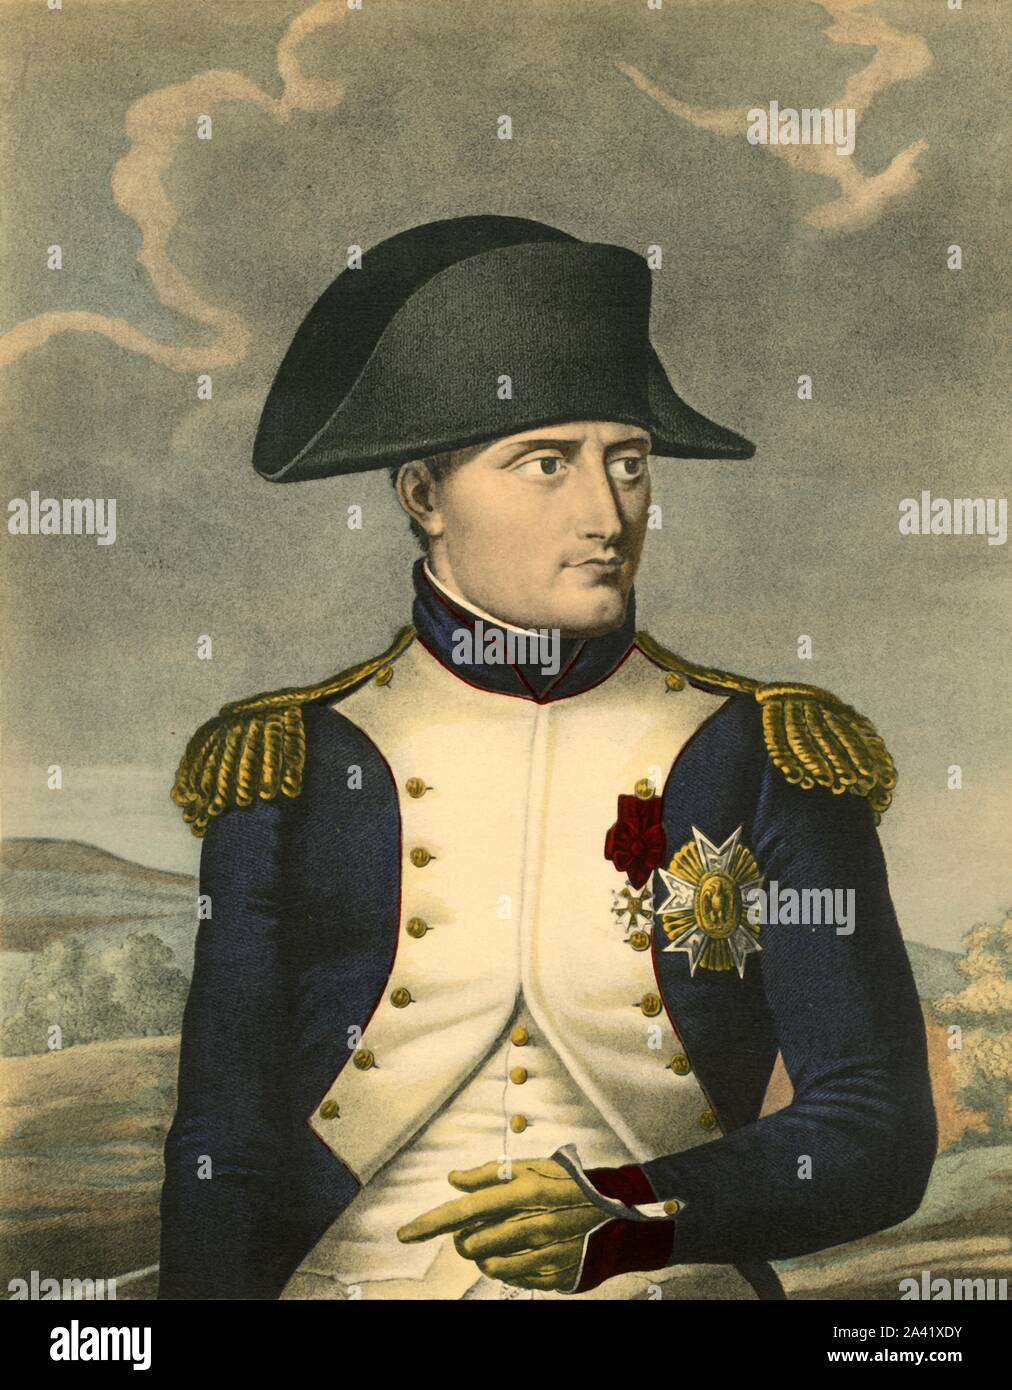 """'Napoleon the Great, Emperor of the French, King of Italy', c1806, (1921). 'Napoleon Le Grand, Empereur des Français, Roi d'Italie'. Portrait of Napoleon Bonaparte (1769-1821) in cocked hat and uniform. Engraving by Ruotte after Robert Lefèvre. From """"Napoleon"""", by Raymond Guyot, [H. Floury, Paris, 1921] Stock Photo"""